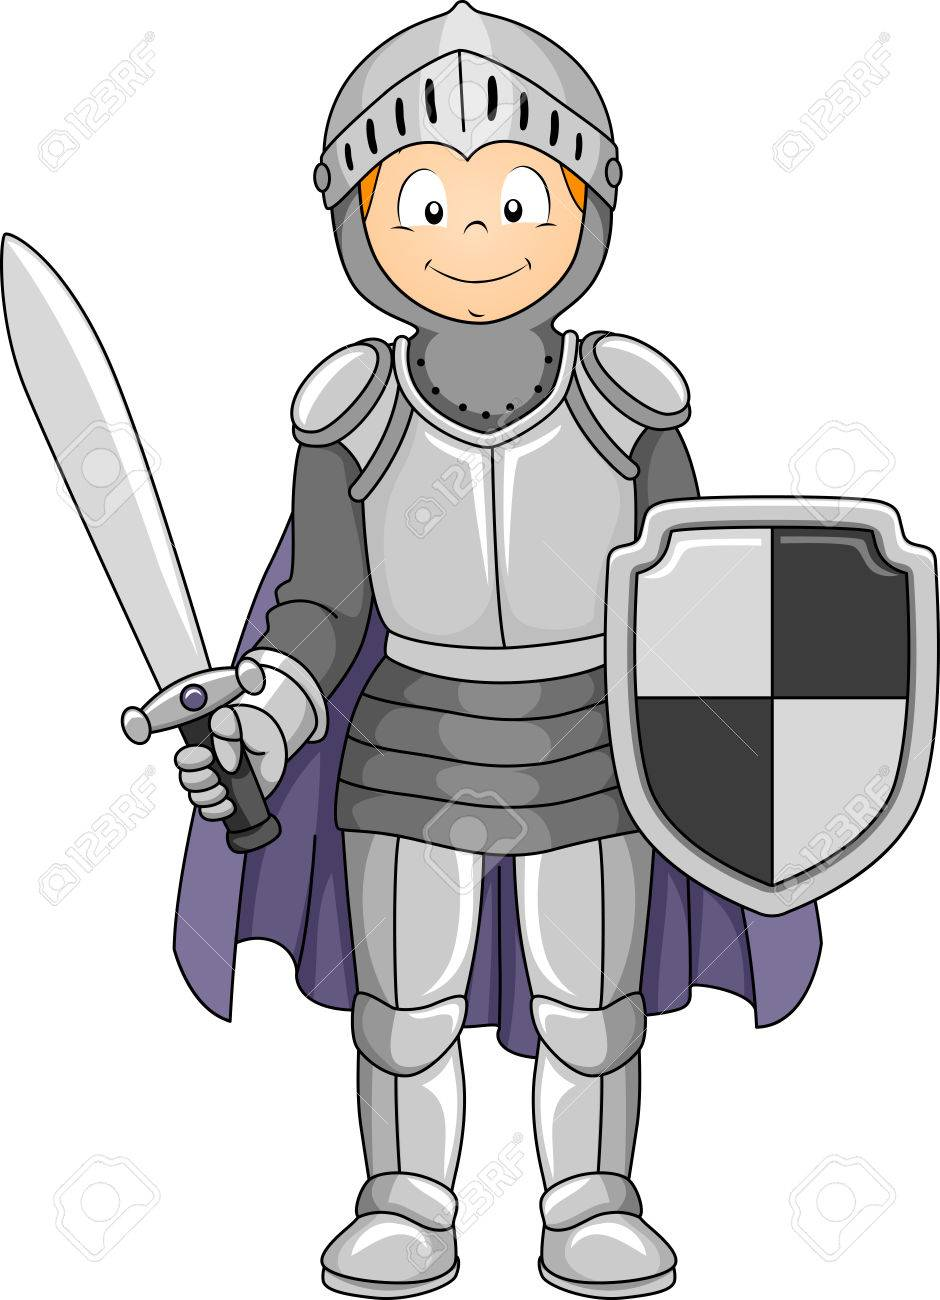 Illustration Featuring a Boy Wearing a Knight Costume - 33520446